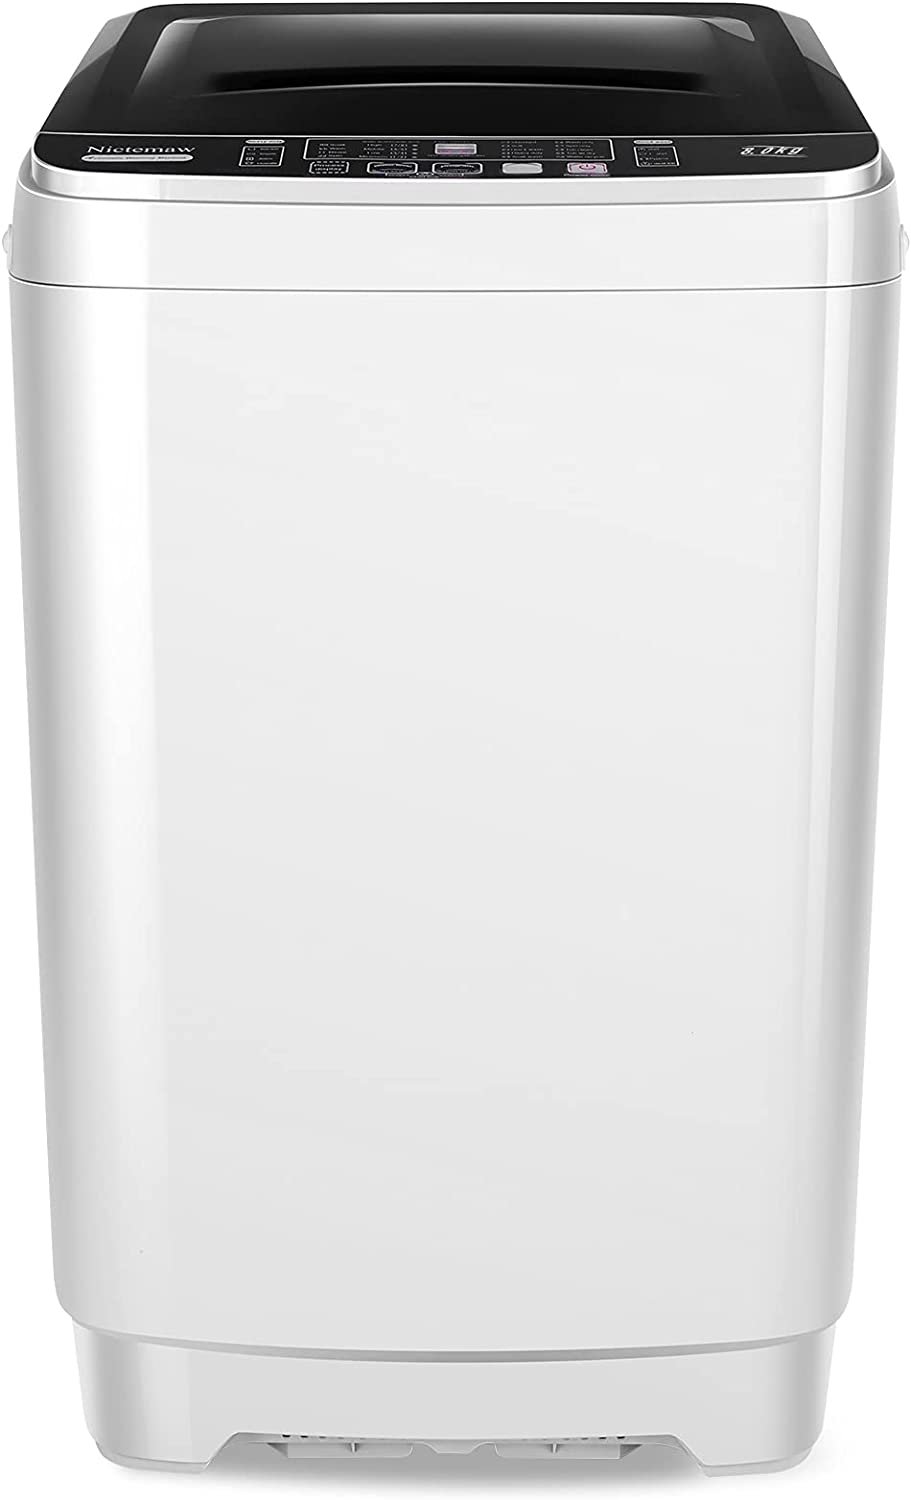 Portable Washer Nictemaw Full-Automatic Washing Machine 1.0Cu.ft/10.5Lbs Capacity 2 in 1 Laundry Washer with 10 programs & 8 Water Level Selections Compact Washer and Dryer for Home, Apartments, Dorm, Camping (17.5Lbs)